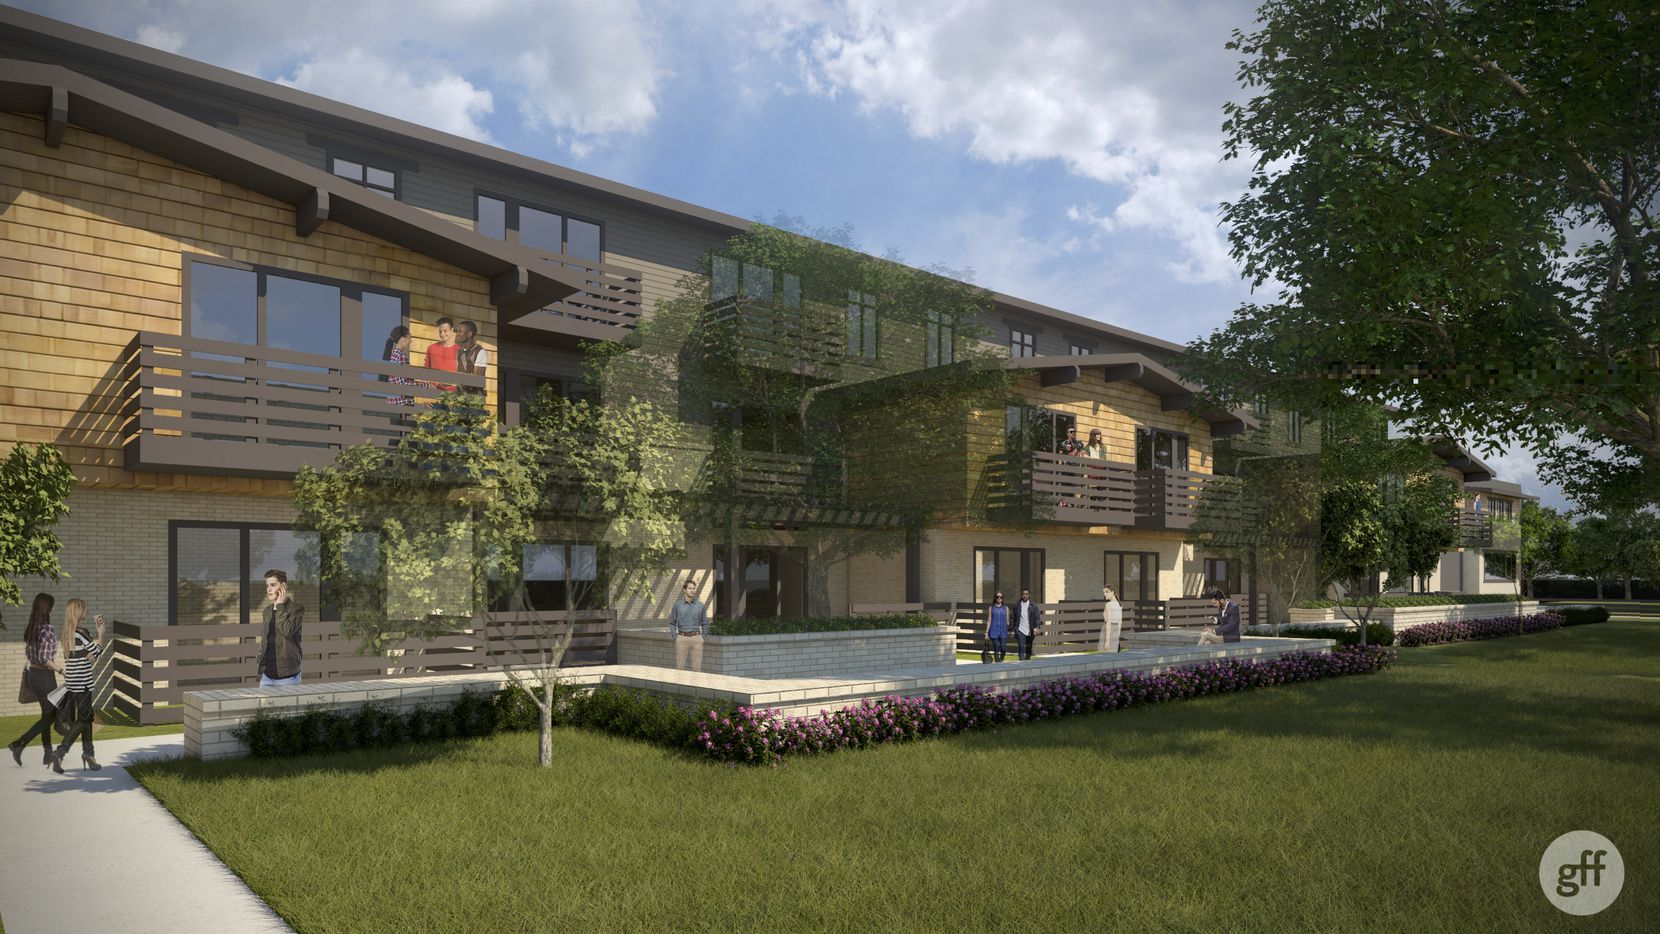 Trammell Crow Residential's new Alexan Lower Greenville apartments were designed by GFF